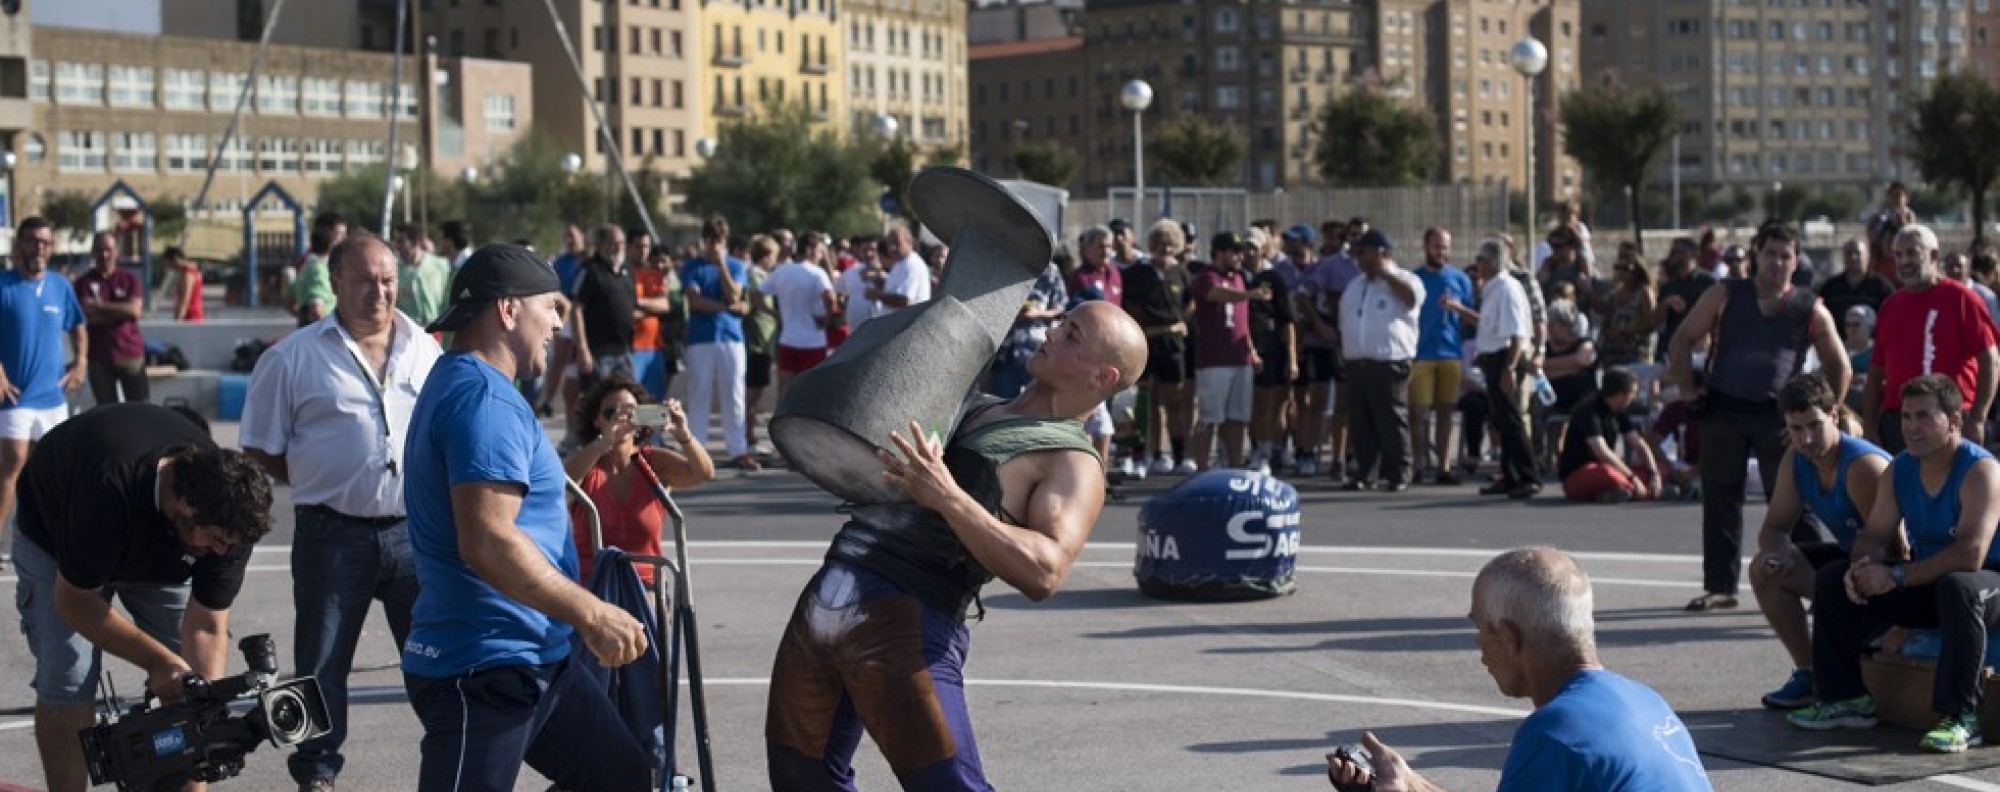 A stone-lifting event in San Sebastian. Picture: Miguel Candela